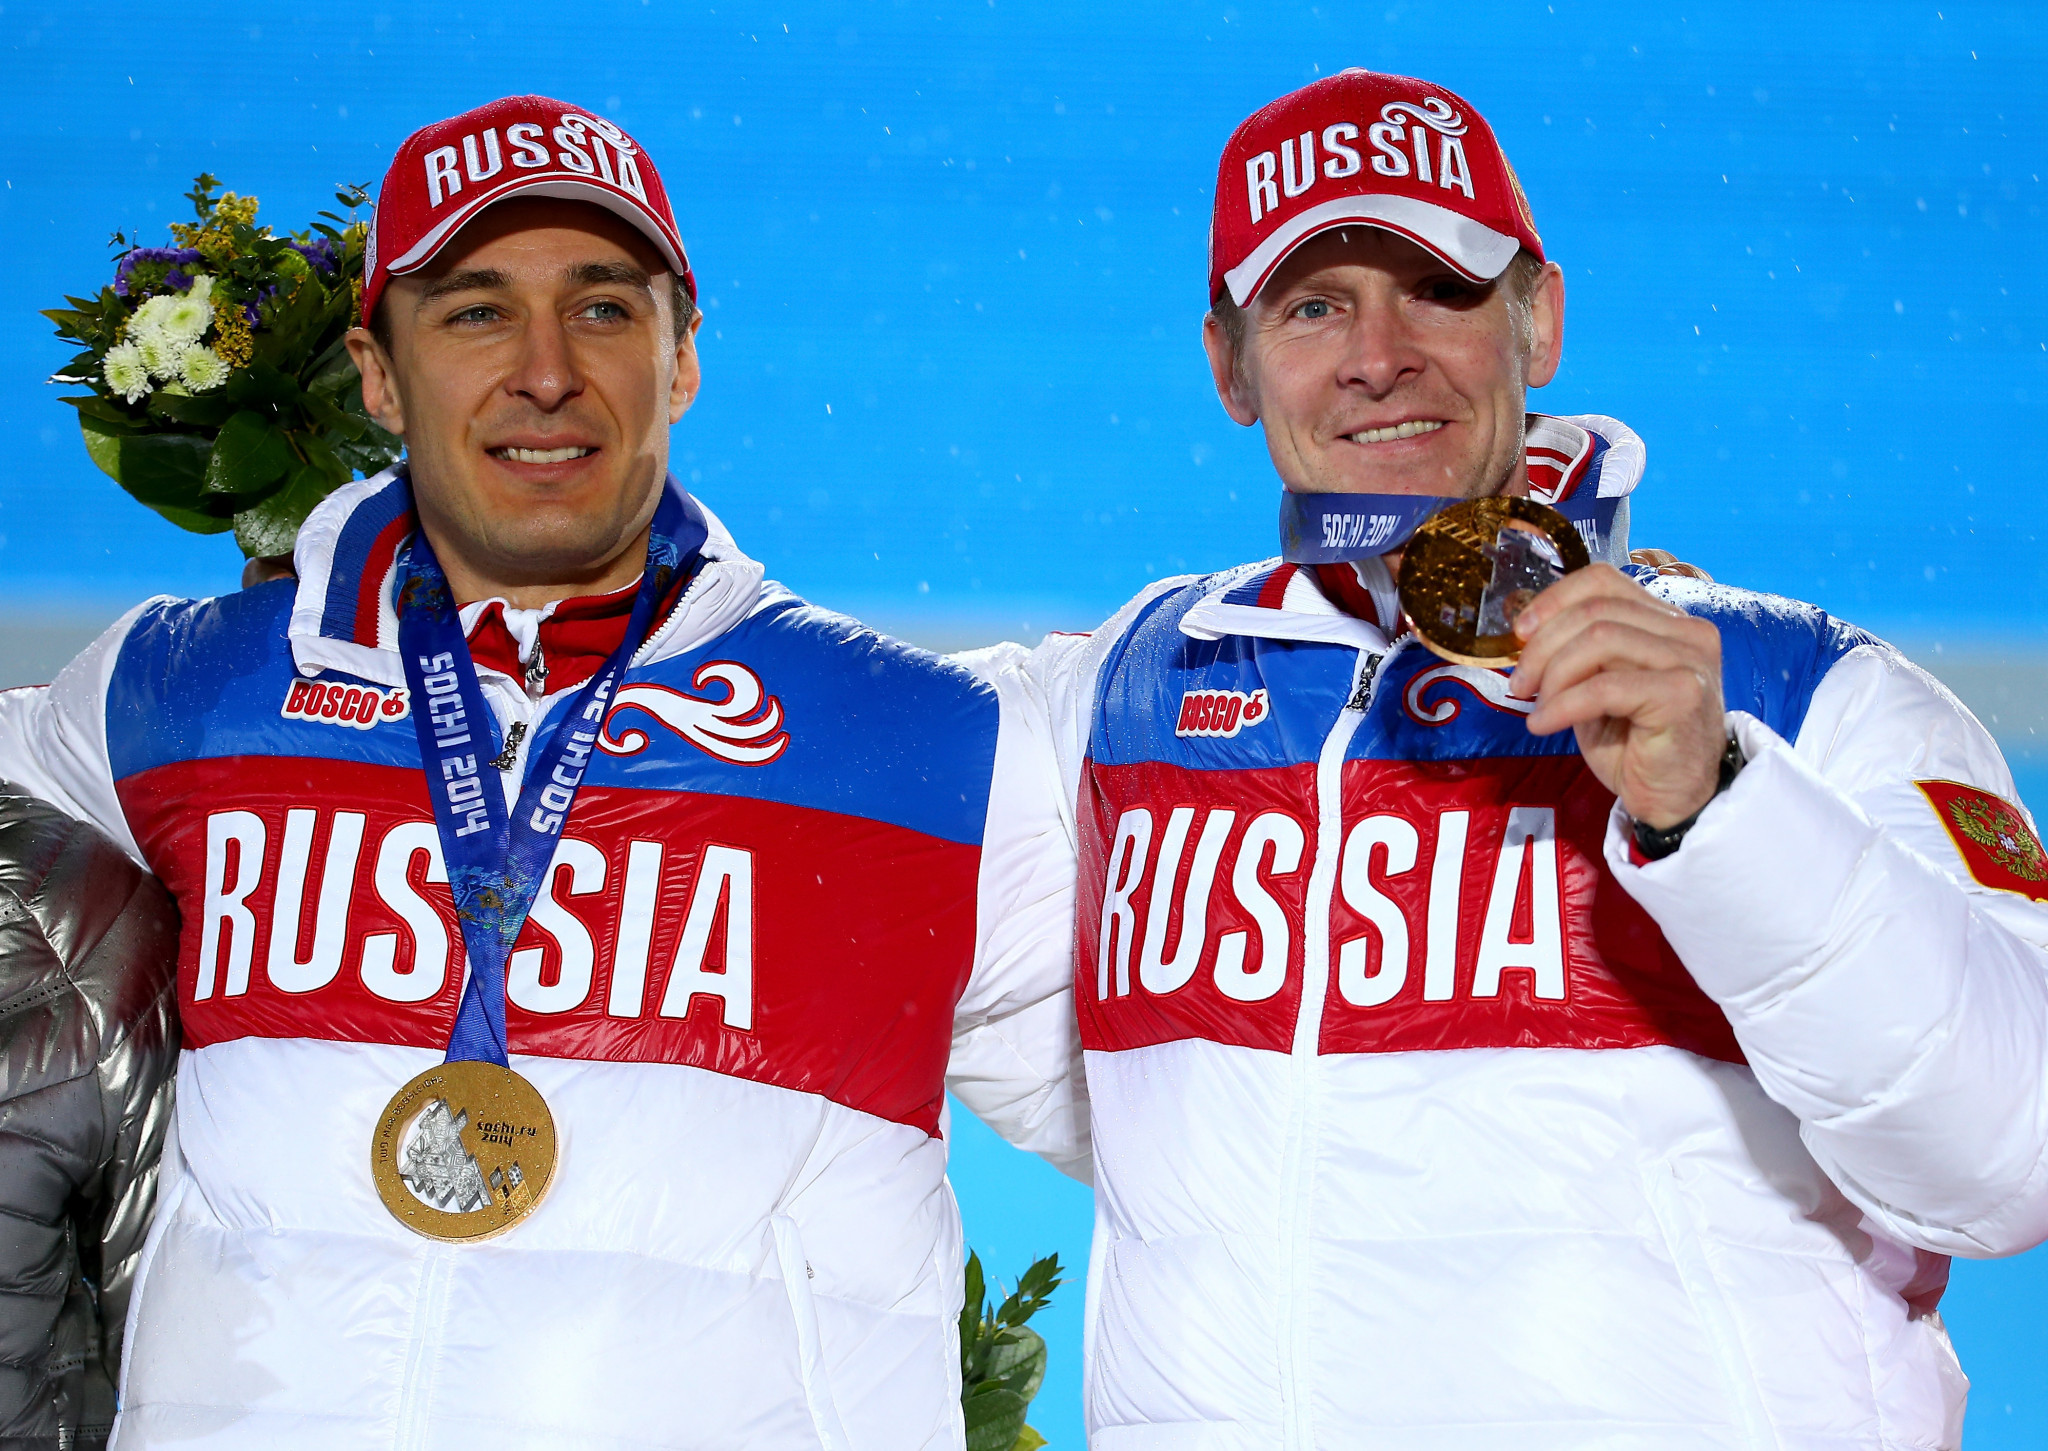 Russian bobsledder Zubkov claims will only return Olympic gold medals after IOC ask him personally